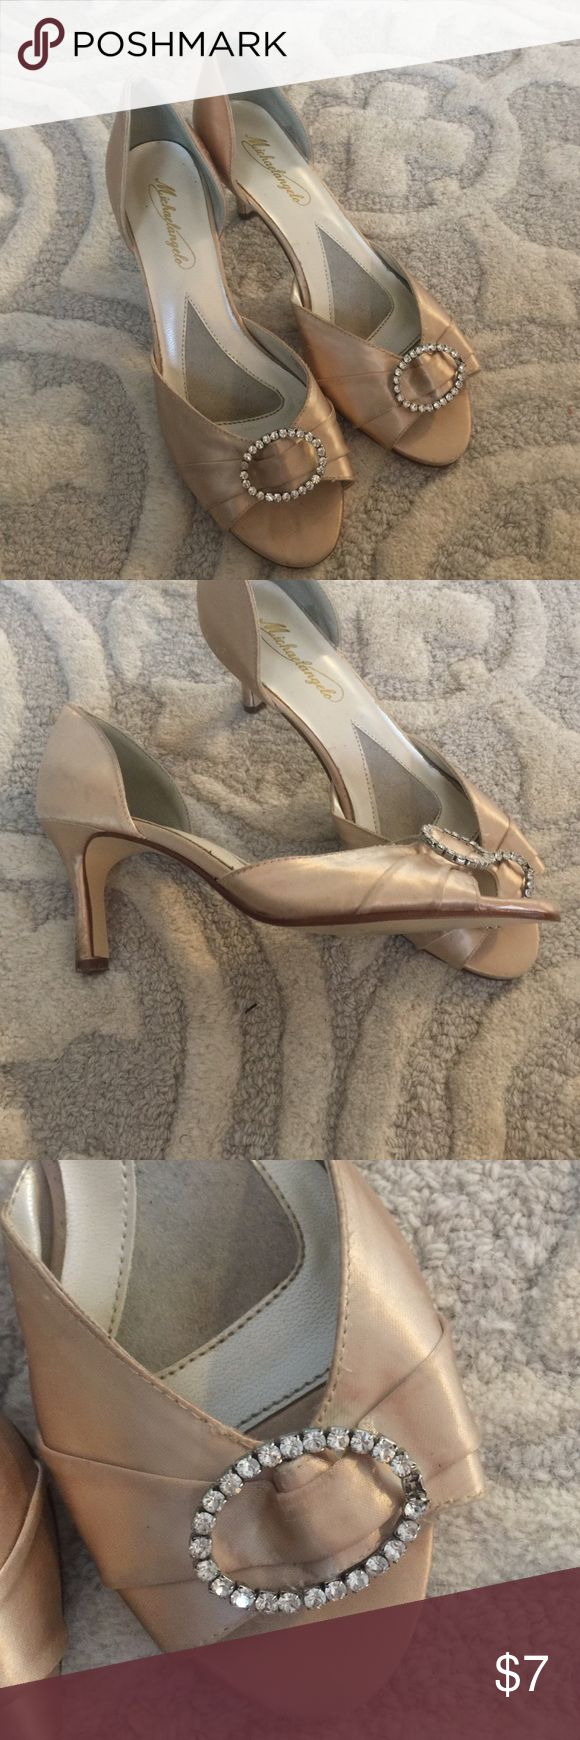 Champagne colored heels Worn at a wedding.  One stone missing on left shoe (as shown in photo). michaelangelo Shoes Heels